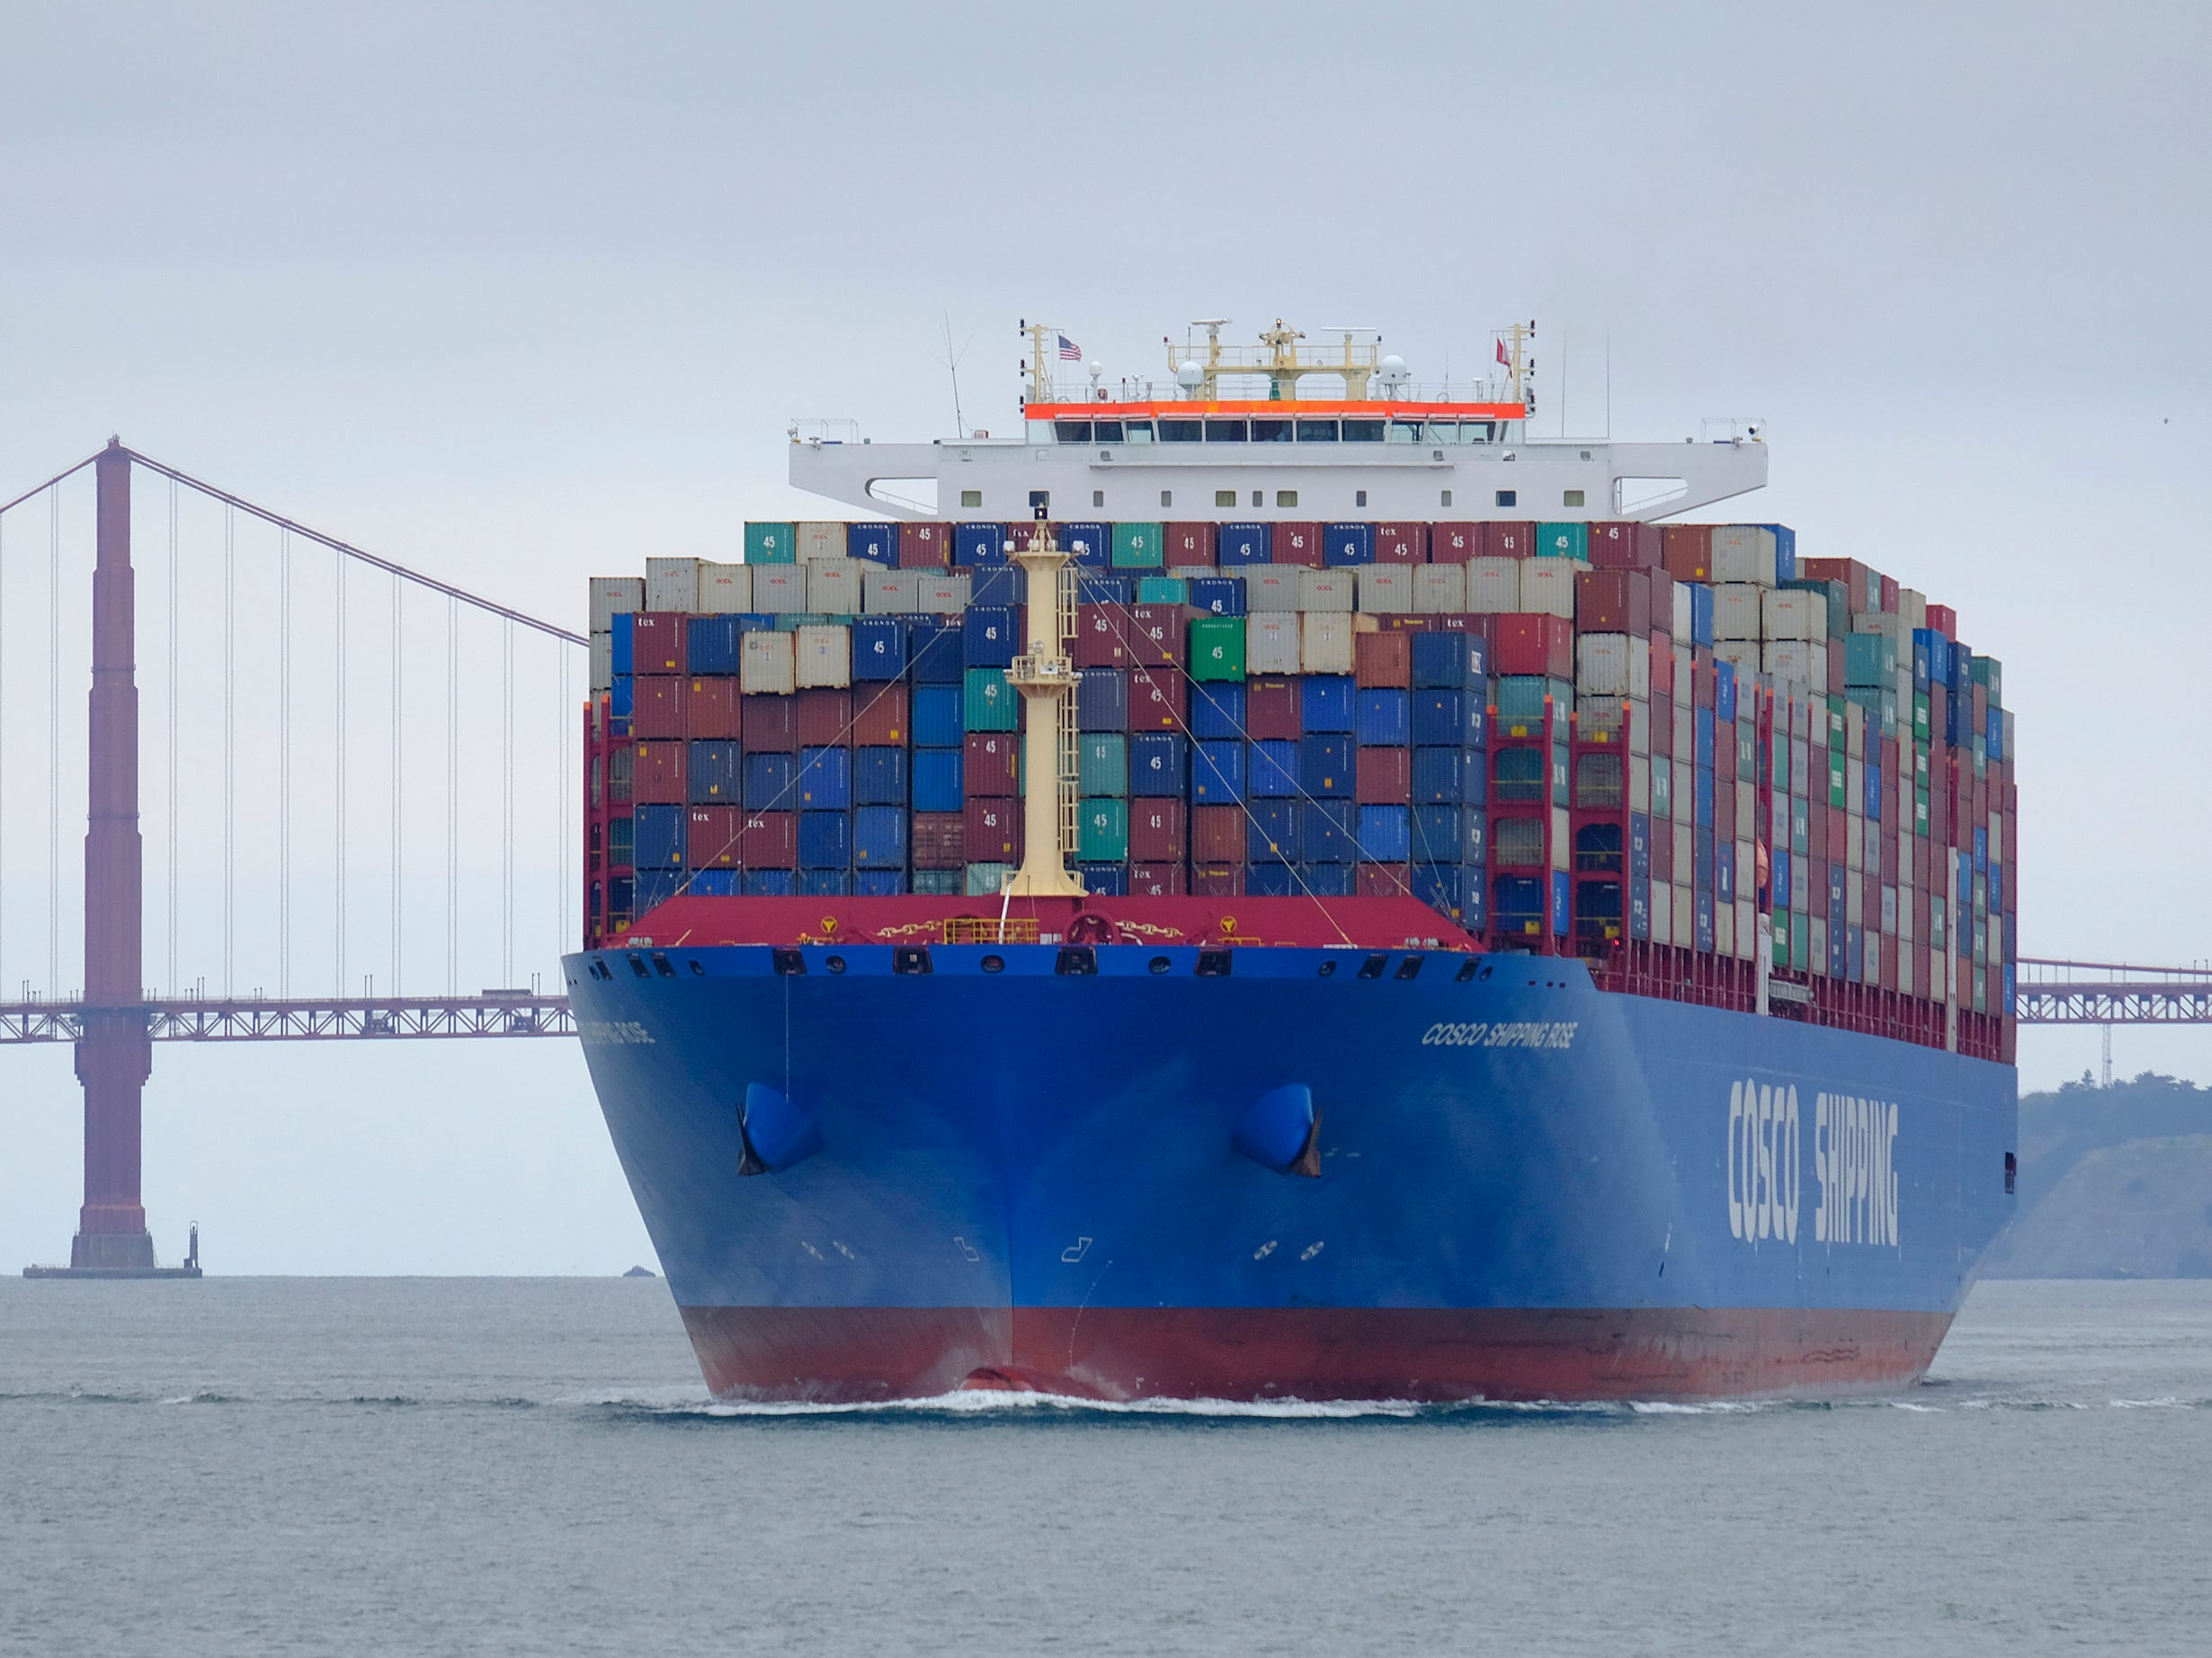 A Cosco Shipping container ship passes the Golden Gate Bridge Tuesday, May 14, 2019, in San Francisco bound for the Port of Oakland. The United States and China are raising tariffs on tens of billions of dollars' worth of each other's imports, escalating a trade war, spooking financial markets and casting gloom over the prospects for the world economy.